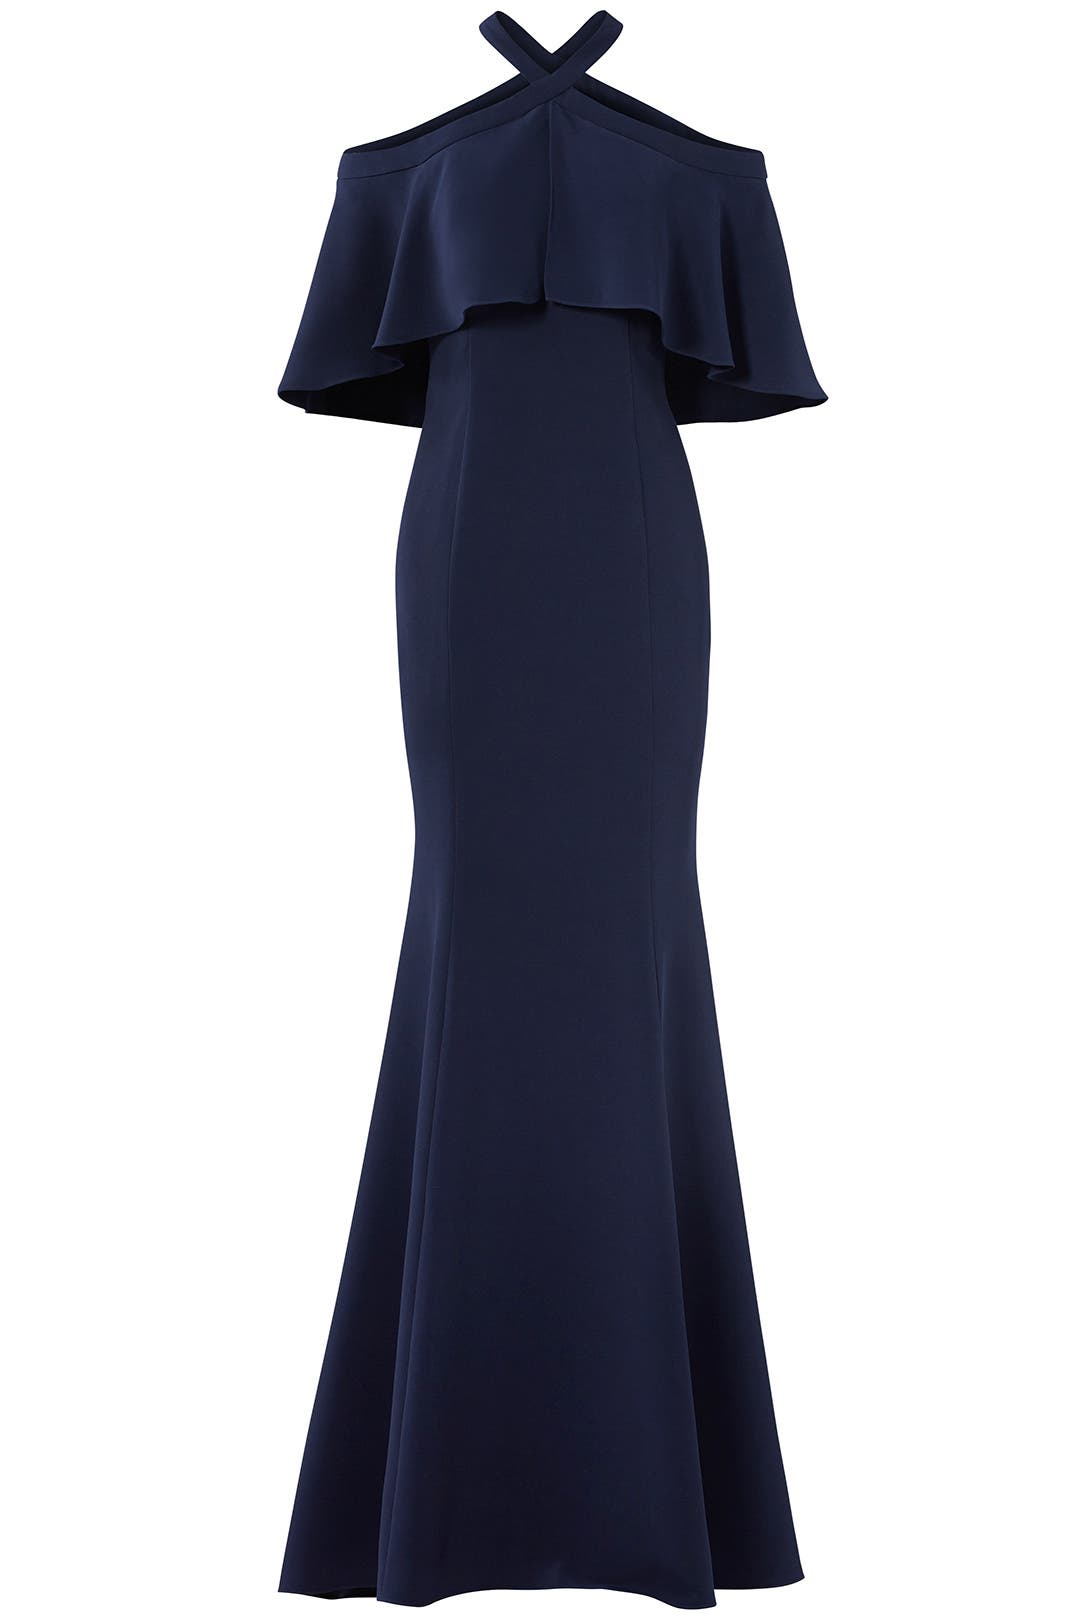 Navy Kayla Gown by Carmen Marc Valvo for $100 - $120 | Rent the Runway